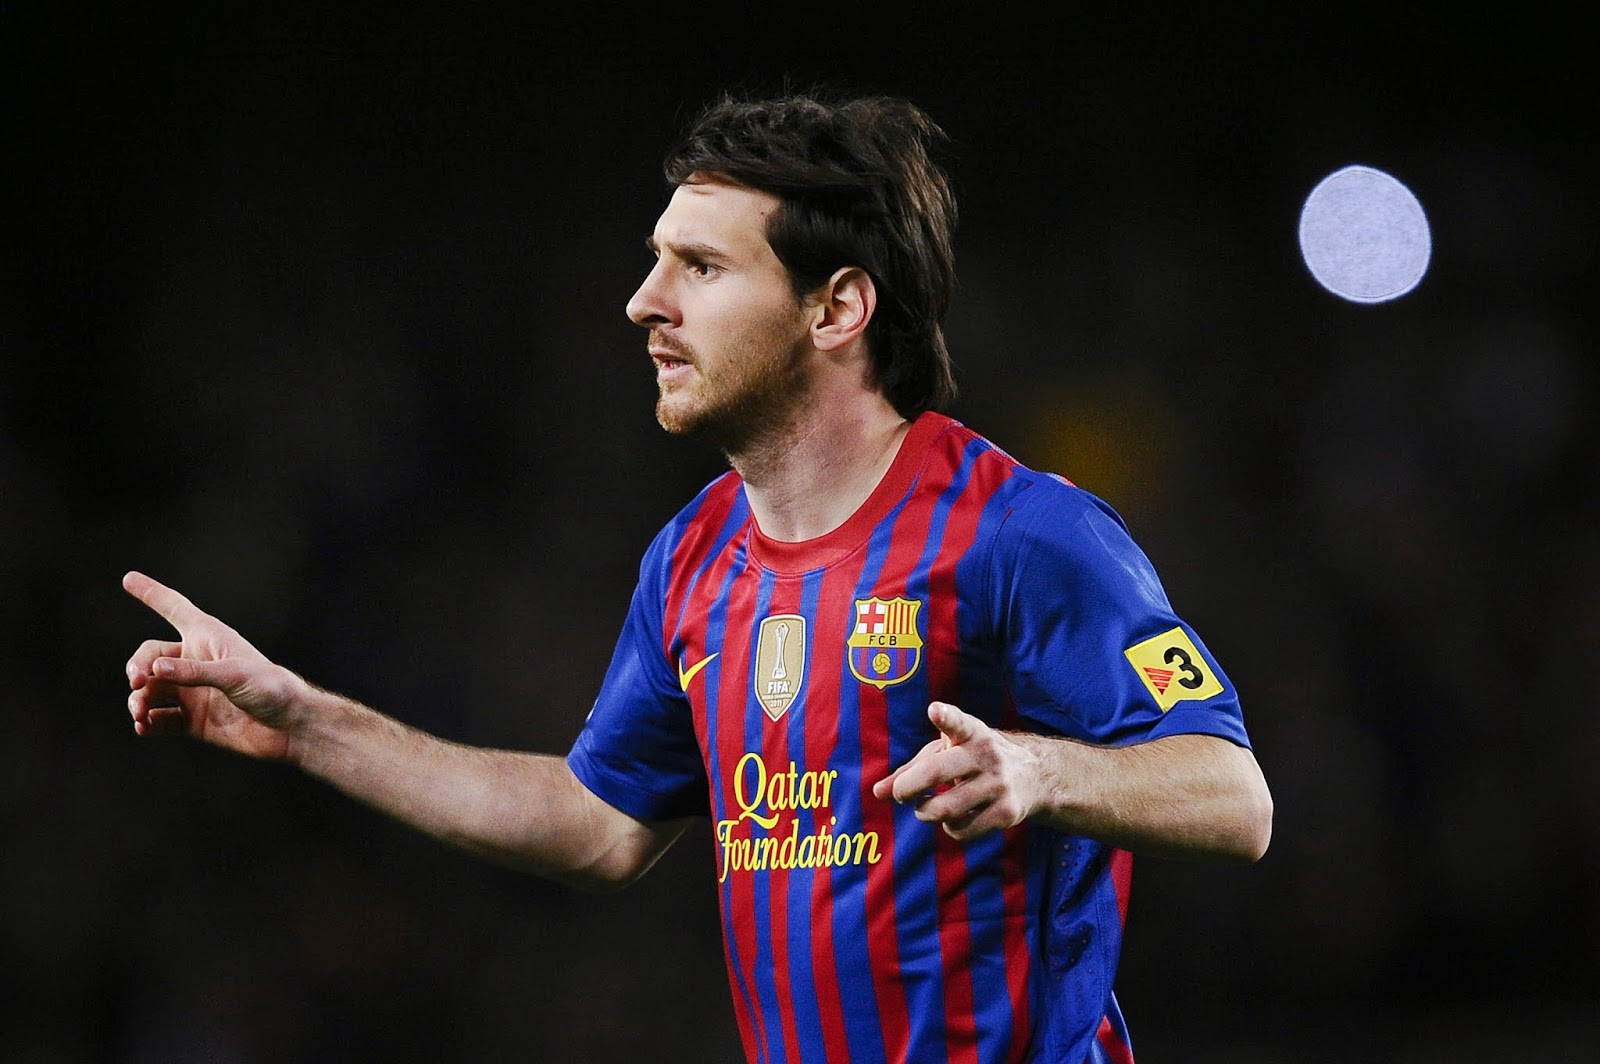 lionel messi hd wallpapers download lionel messi hd wallpapers 1600x1064